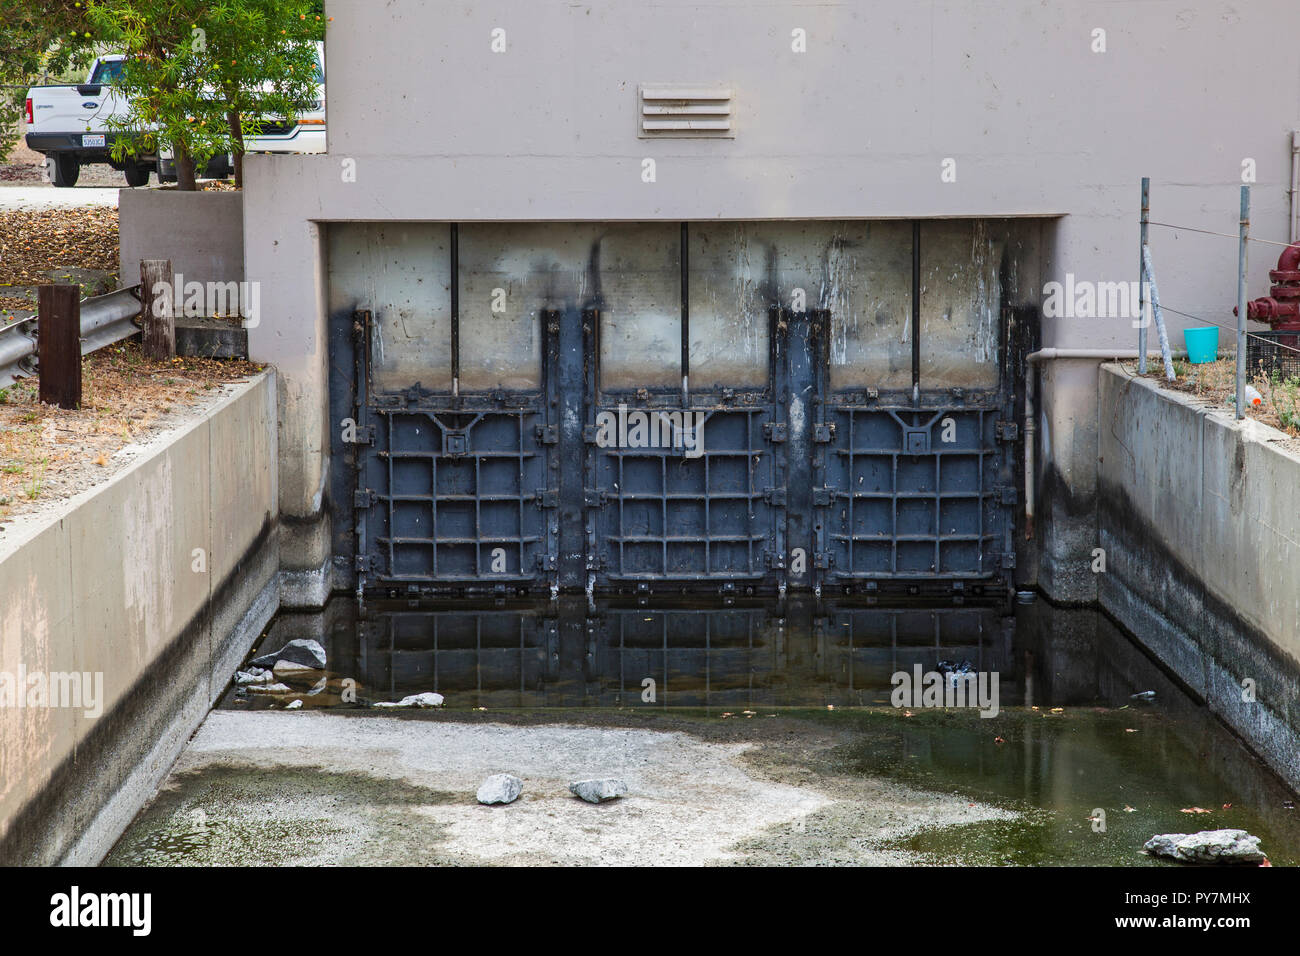 These gates allow either stormwater or tertiary-treated recycled water to enter the spreading grounds for groundwater recharge purposes. San Gabriel S - Stock Image